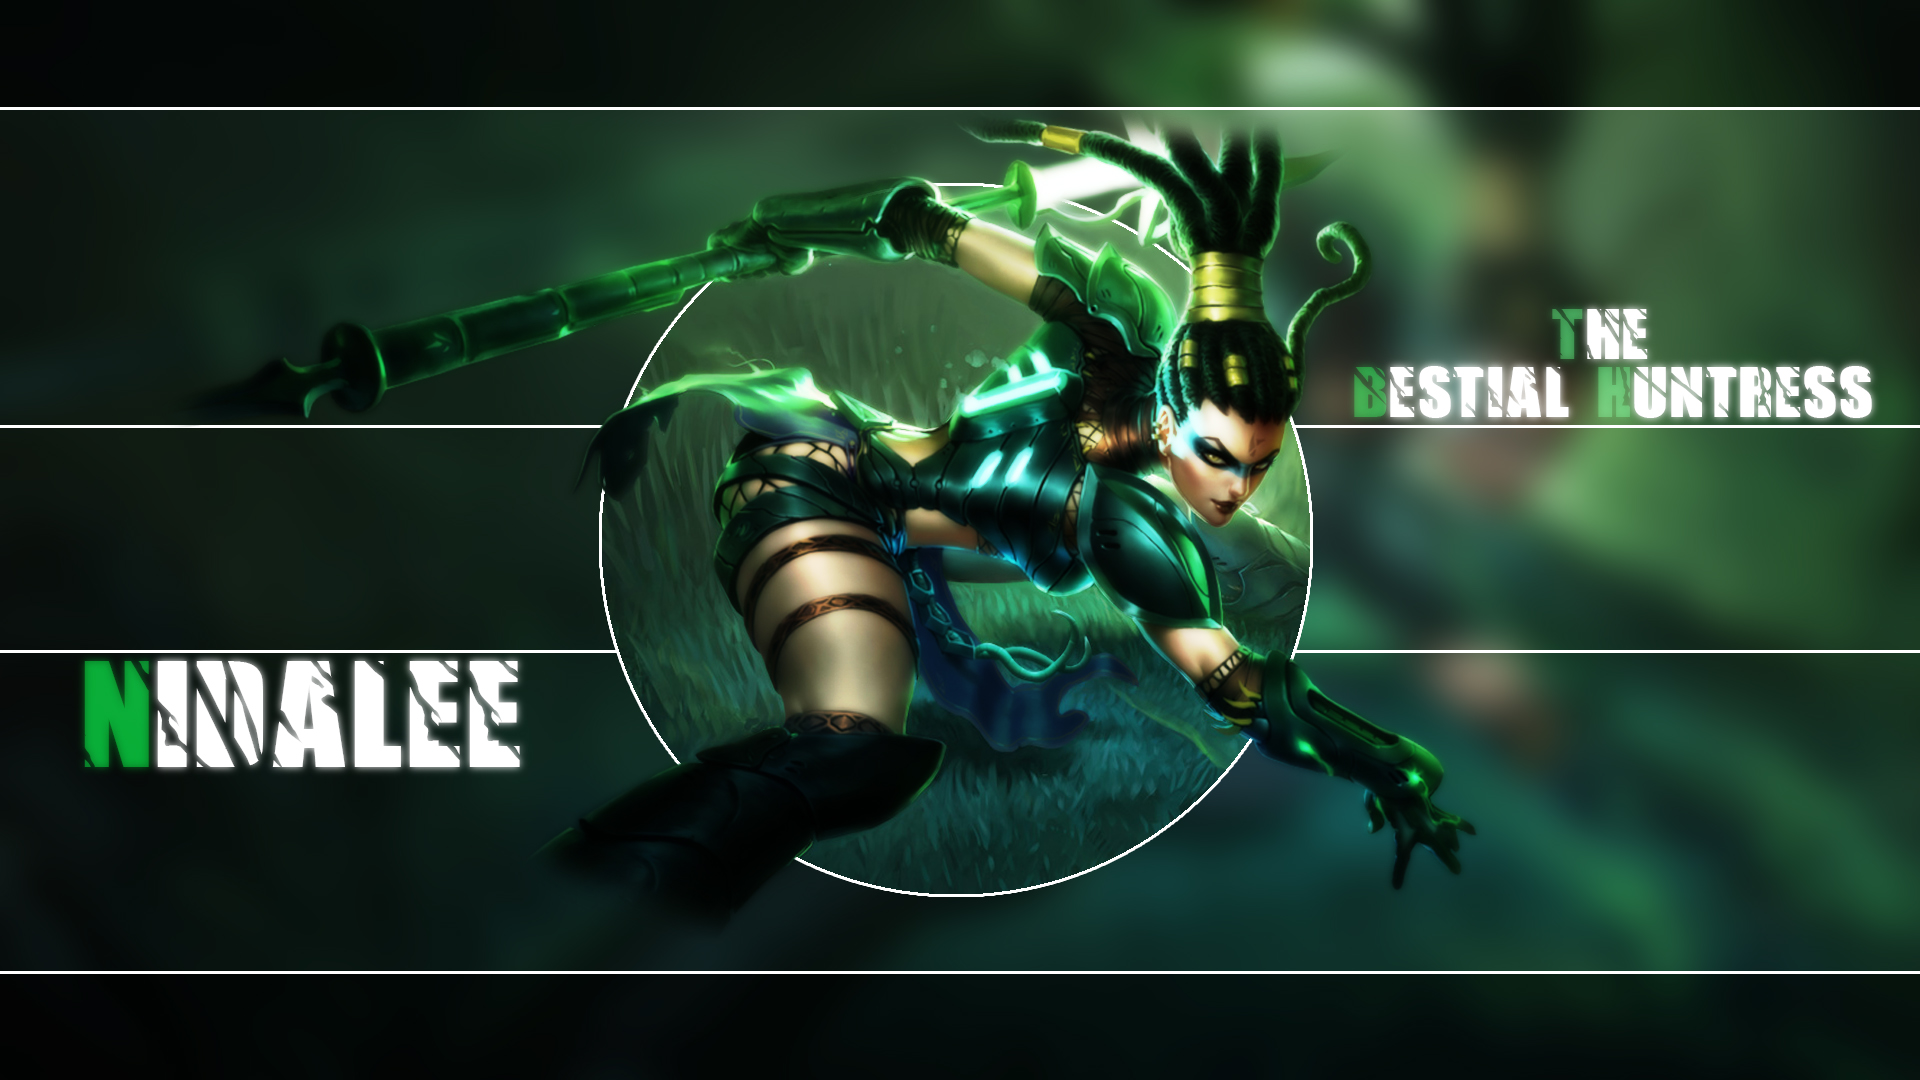 Headhunter Nidalee wallpaper